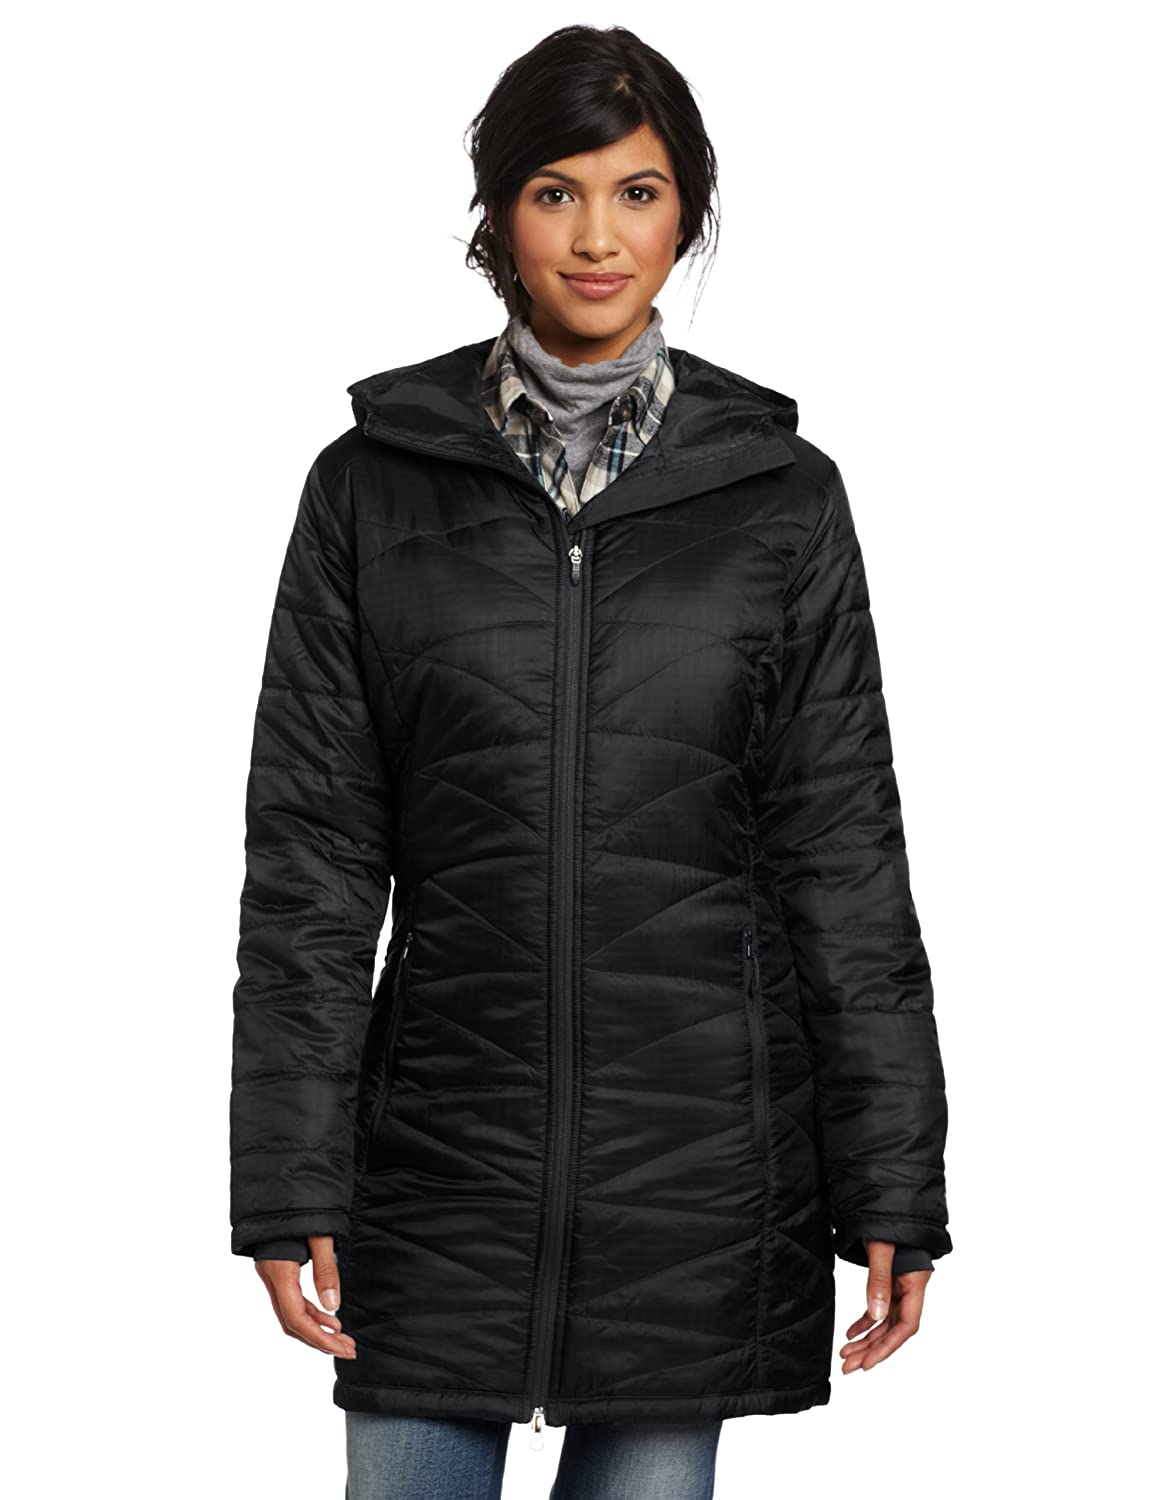 Columbia Women's Mighty Lite Hooded Jacket black jetzt kaufen